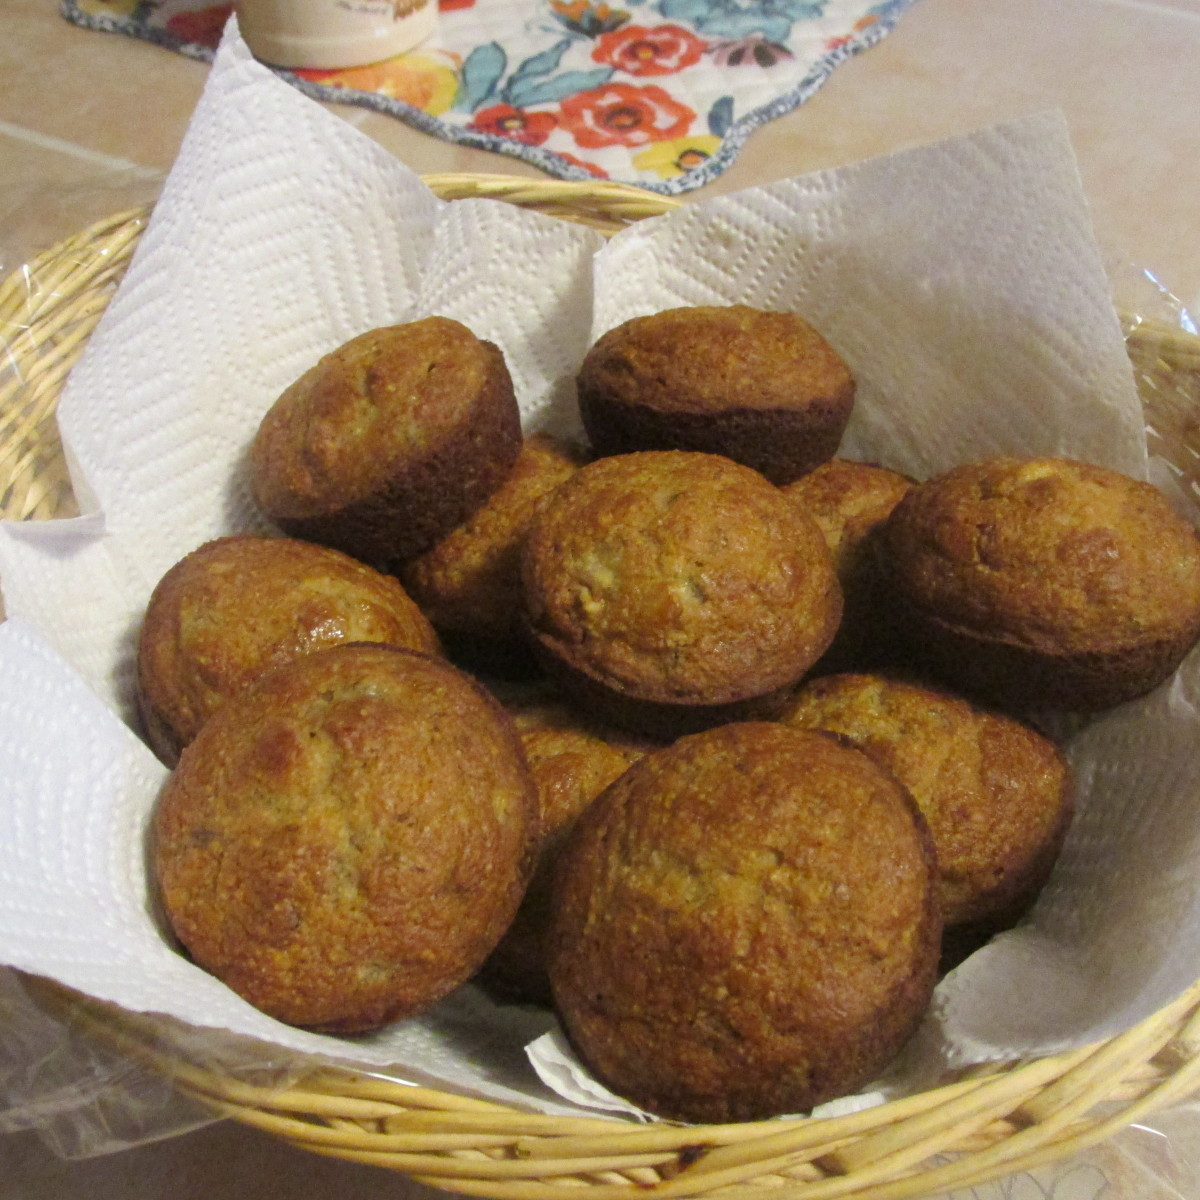 These banana nut muffins are low in fat and have zero sugar!